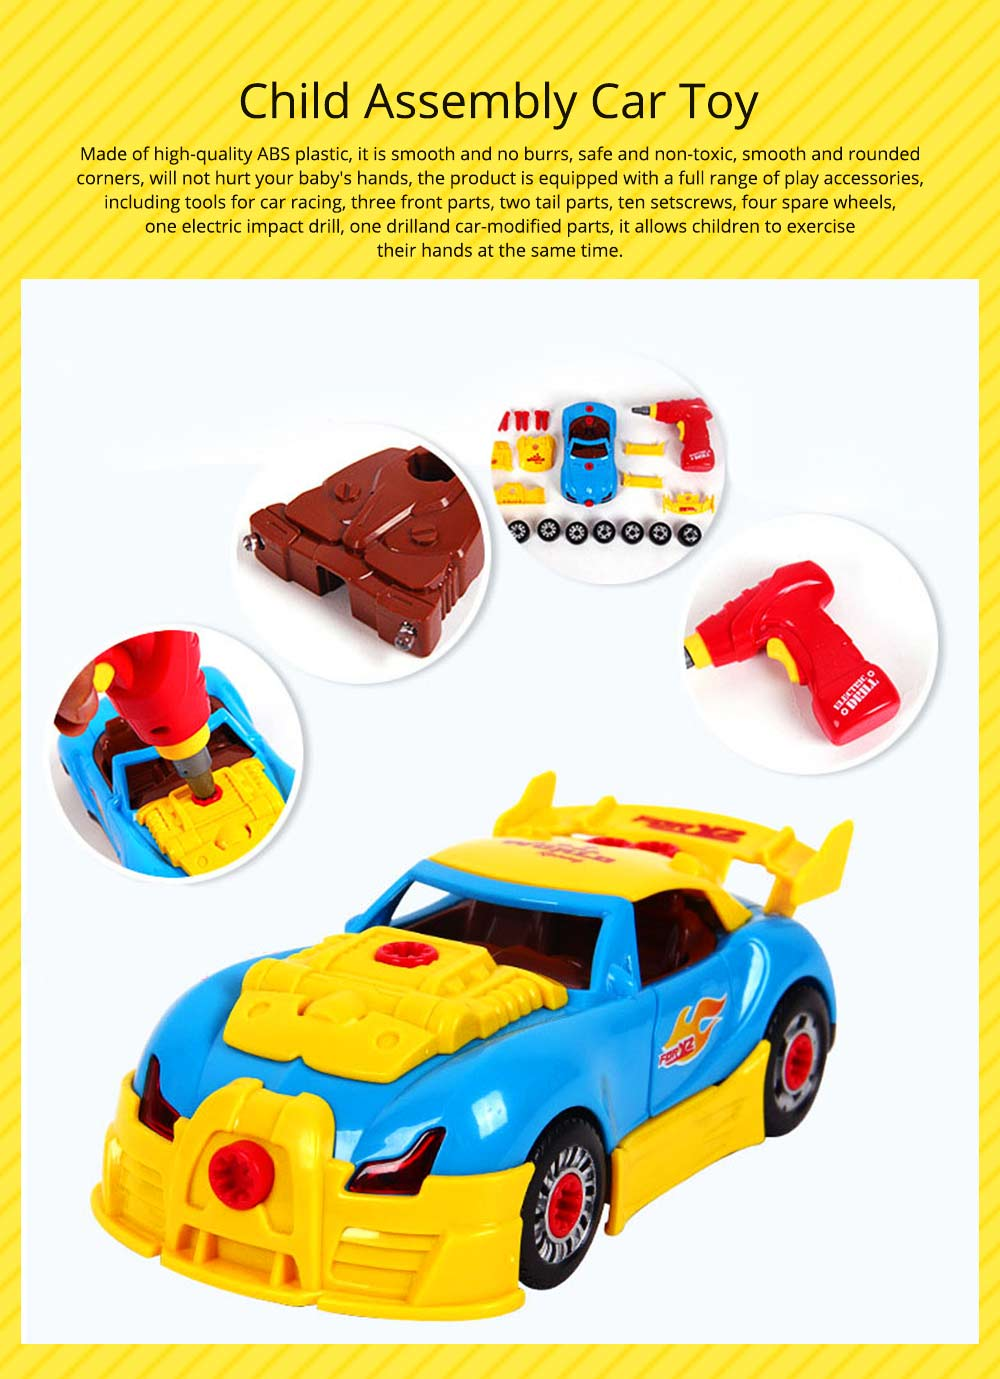 Baby Child Christmas Gift Kids Boy Disassembly Assembly Classic Drive Car Toy Detachable Electric Screwdriver 0